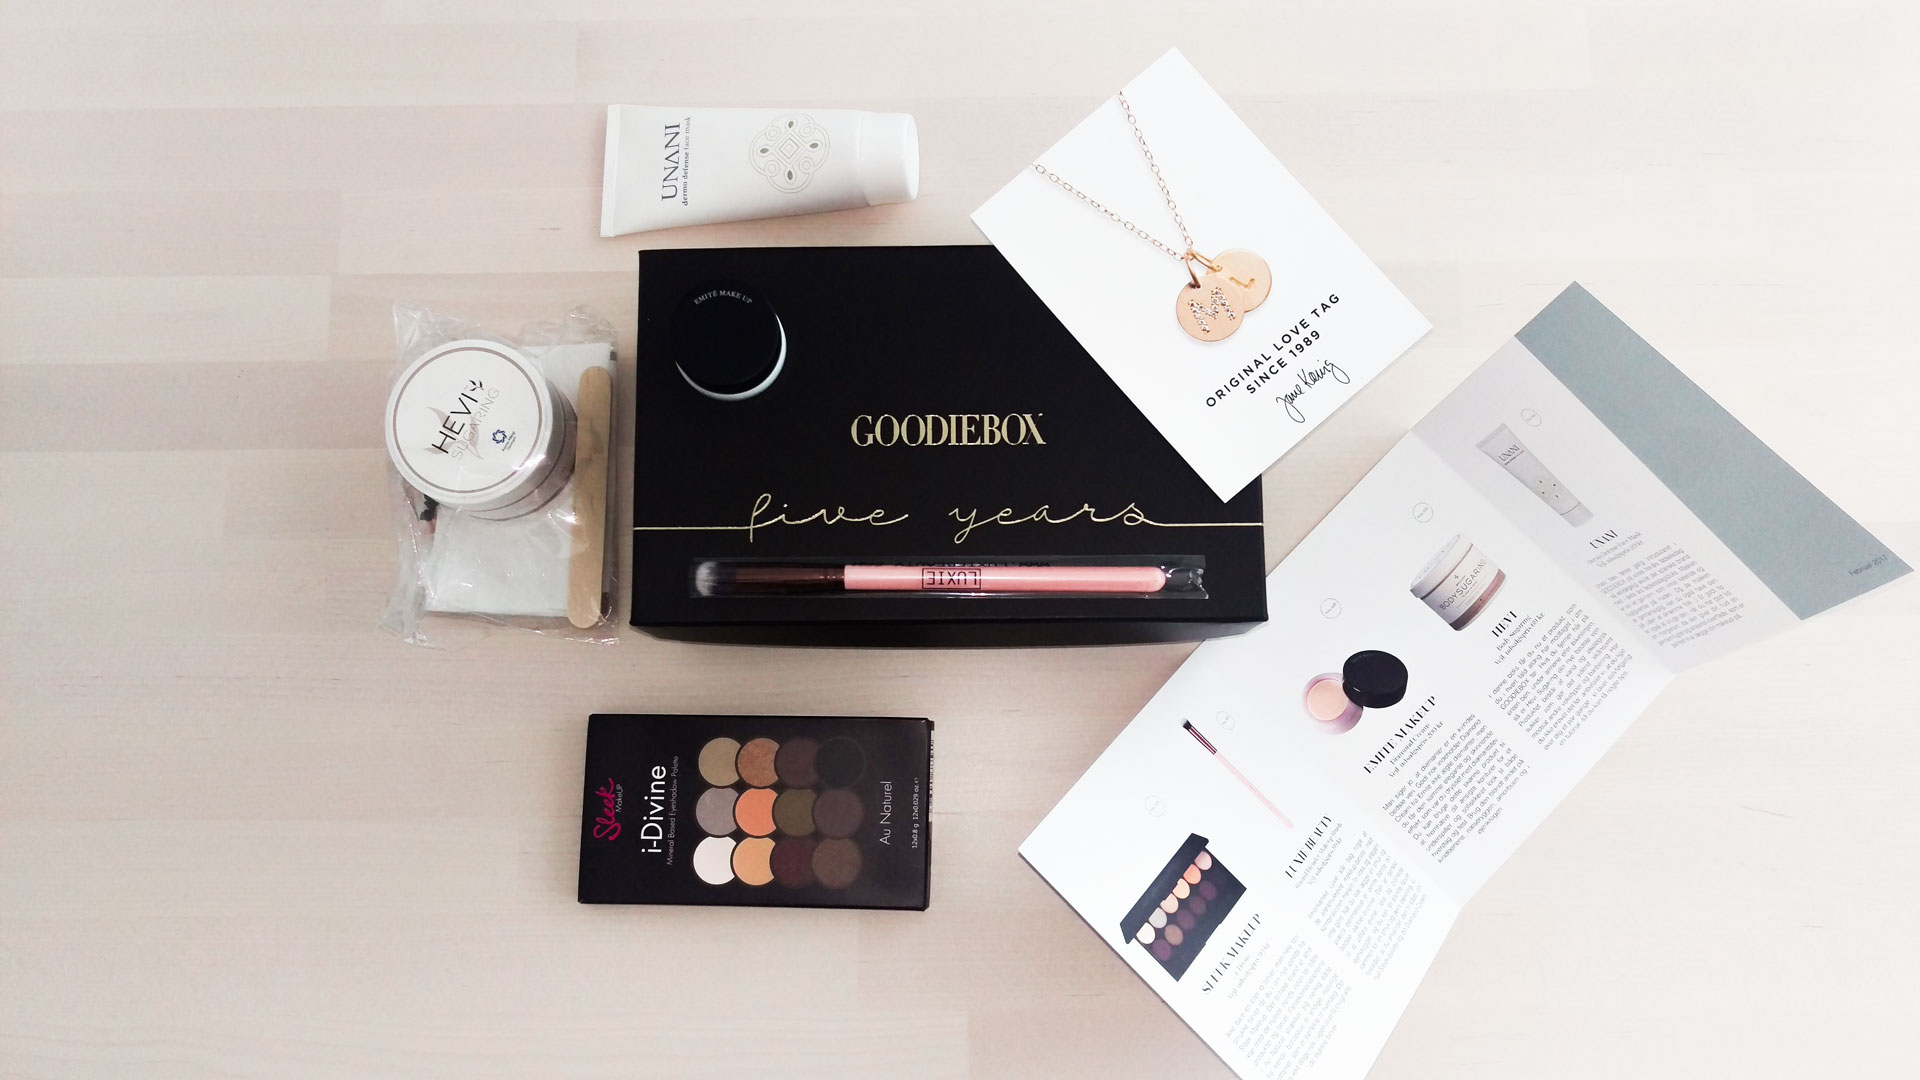 Goodiebox Magasin Februar 2017 darieflavour